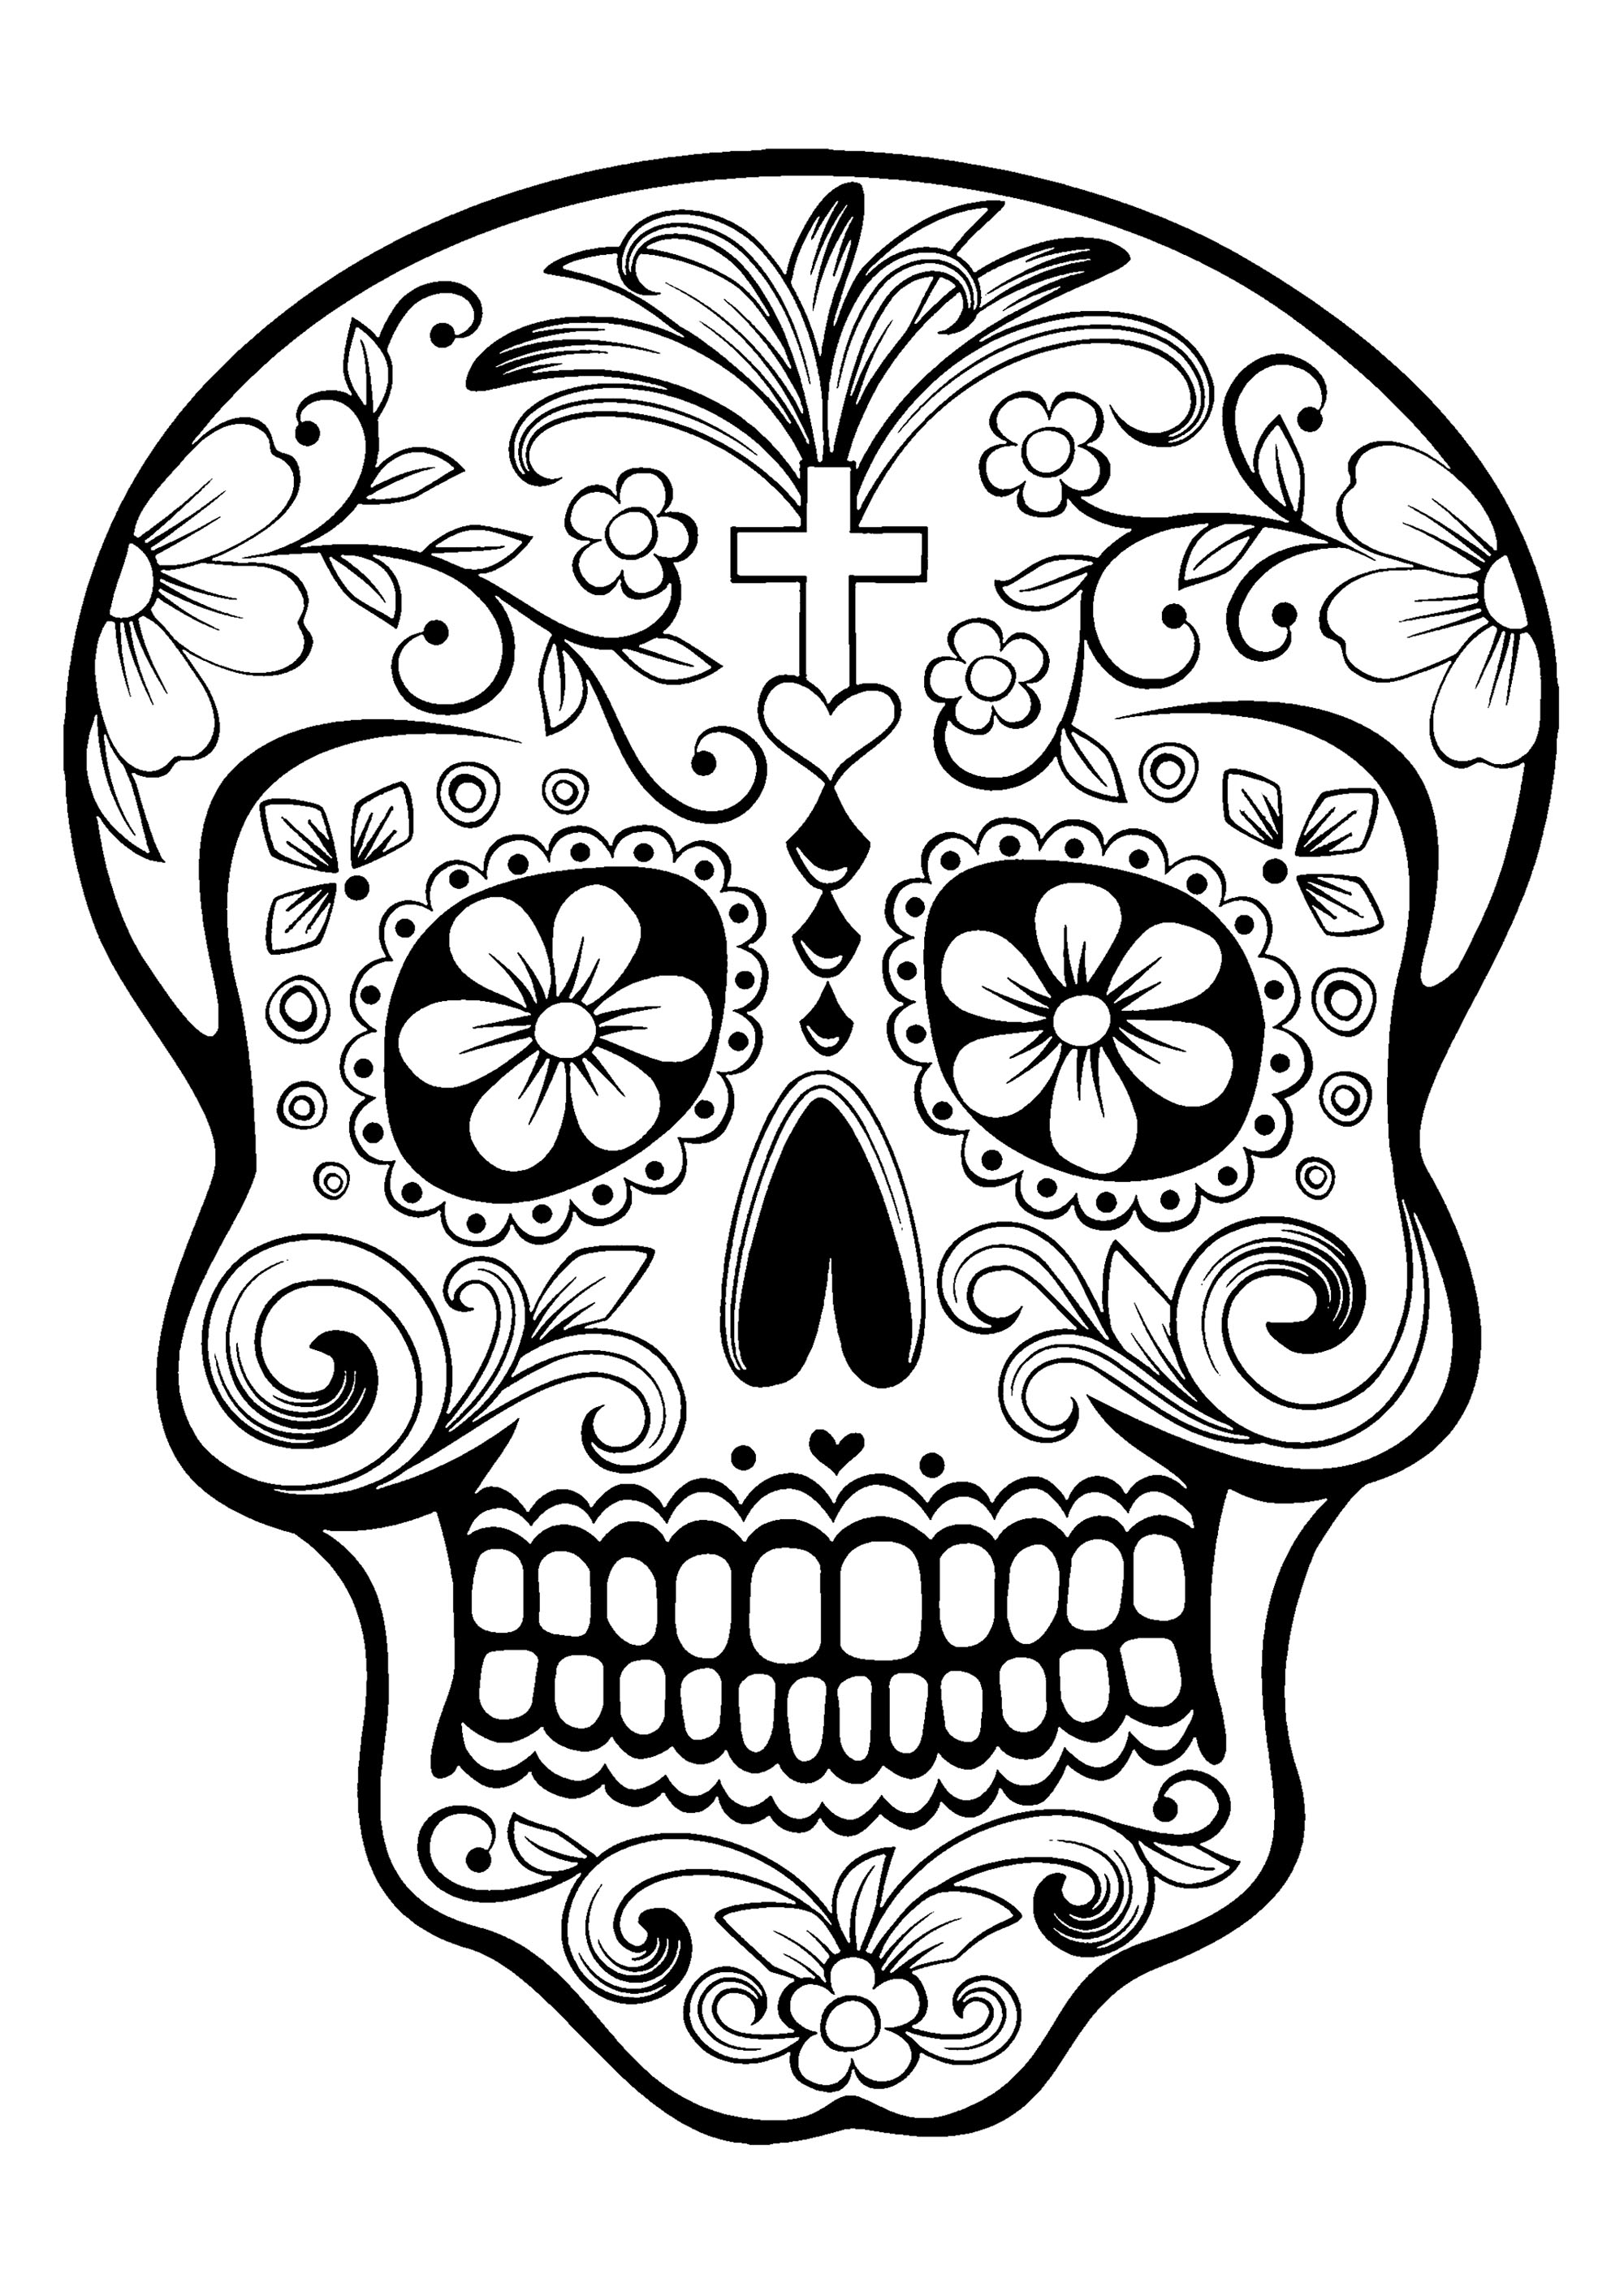 coloring pages dia de los muertos dia de los muertos day of the dead to download dia de dia coloring los muertos pages de